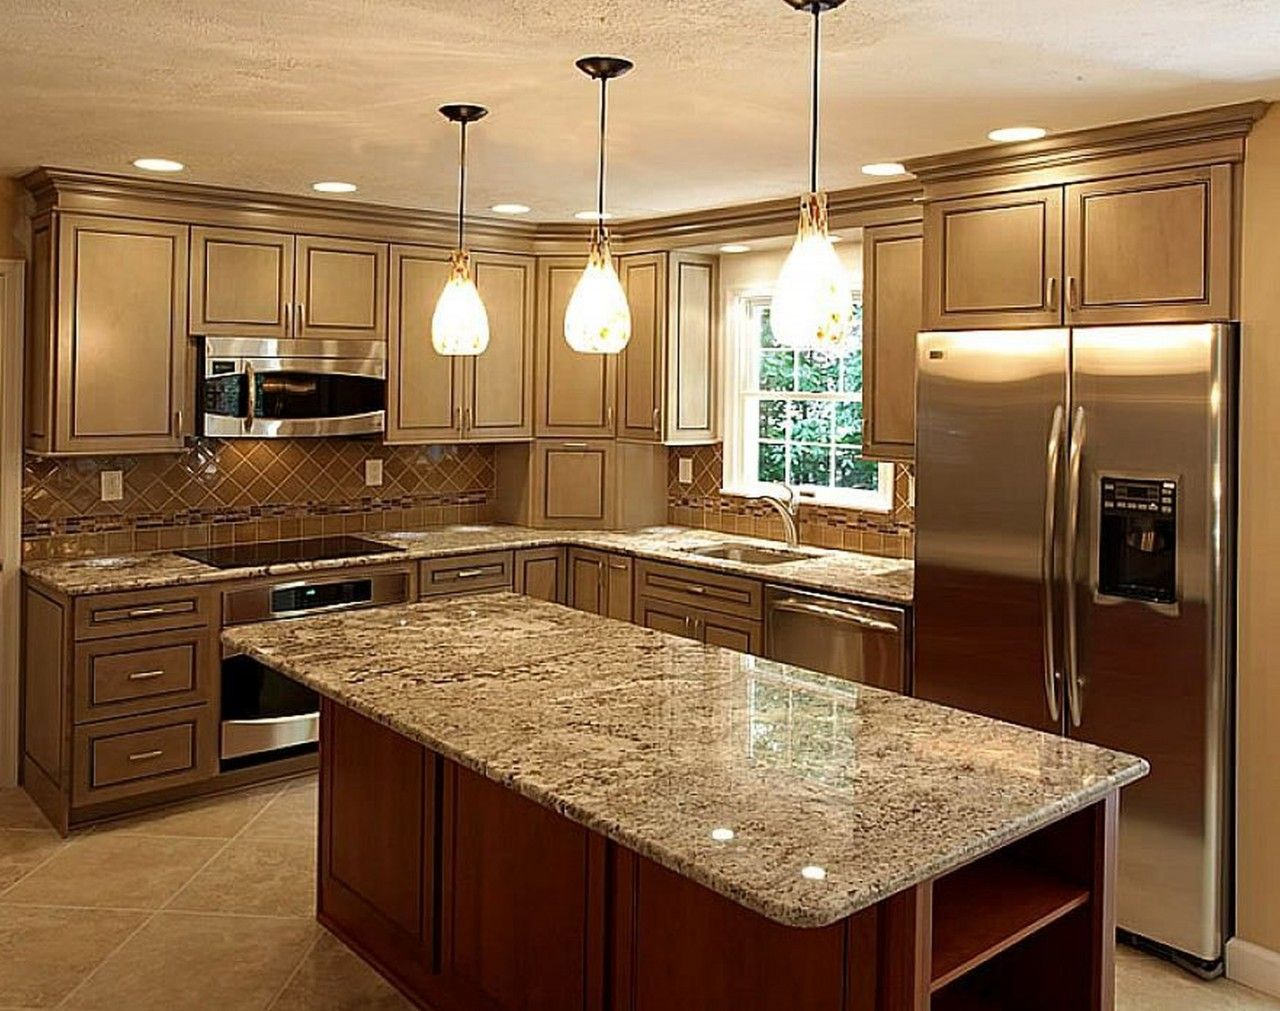 Interior, Cool Lighting Kitchen Log Home Interior Decoration Plans With  Dark Cabinet And Stand With Exotic Marble Countertop And Antique Pendant  Lights: Log ...